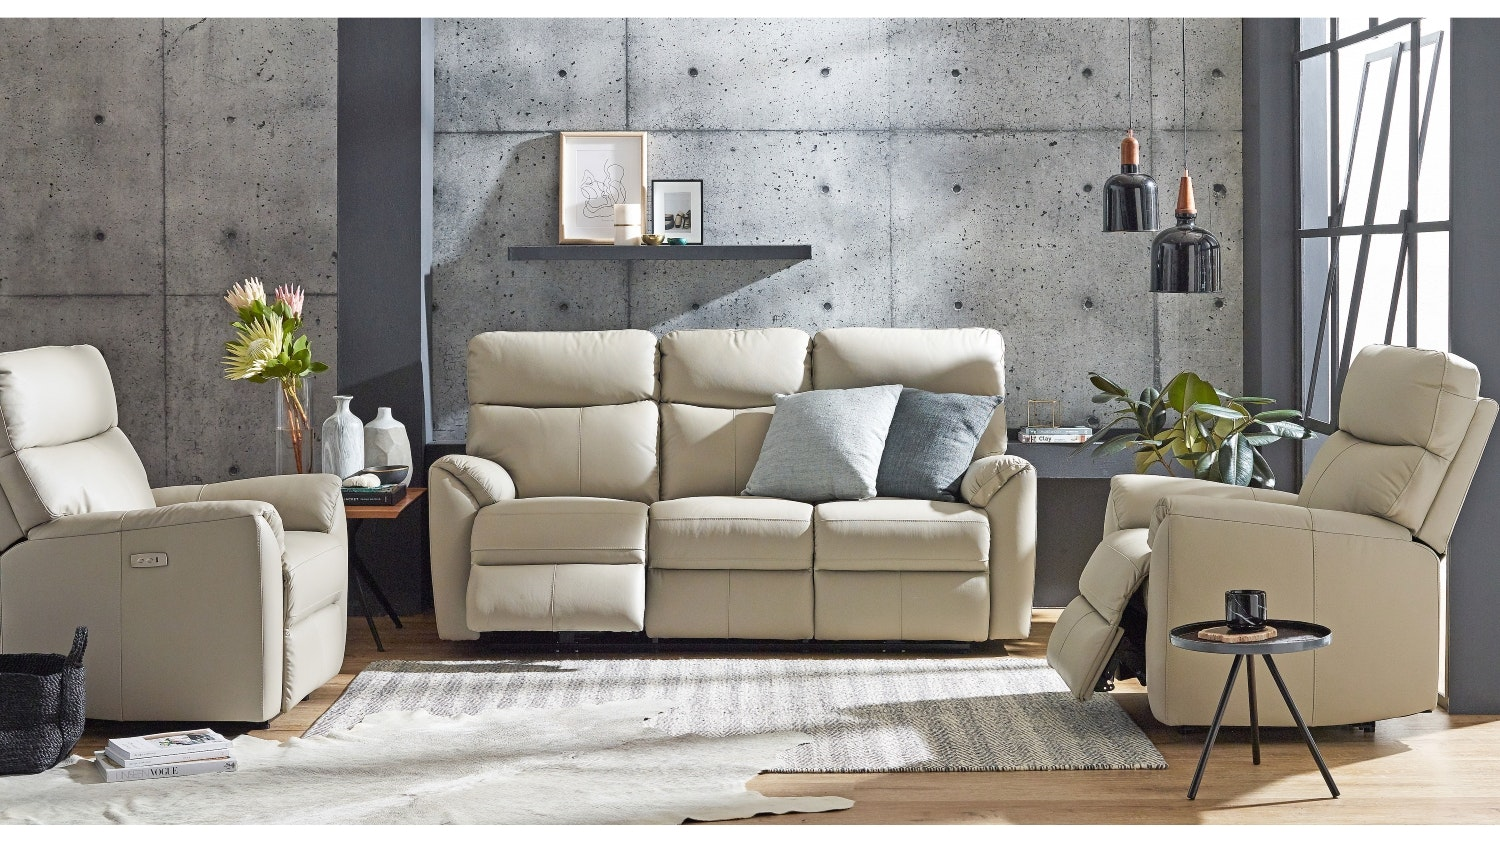 Montague Leather Sofa Package with Electric Reclining Actions - Mist